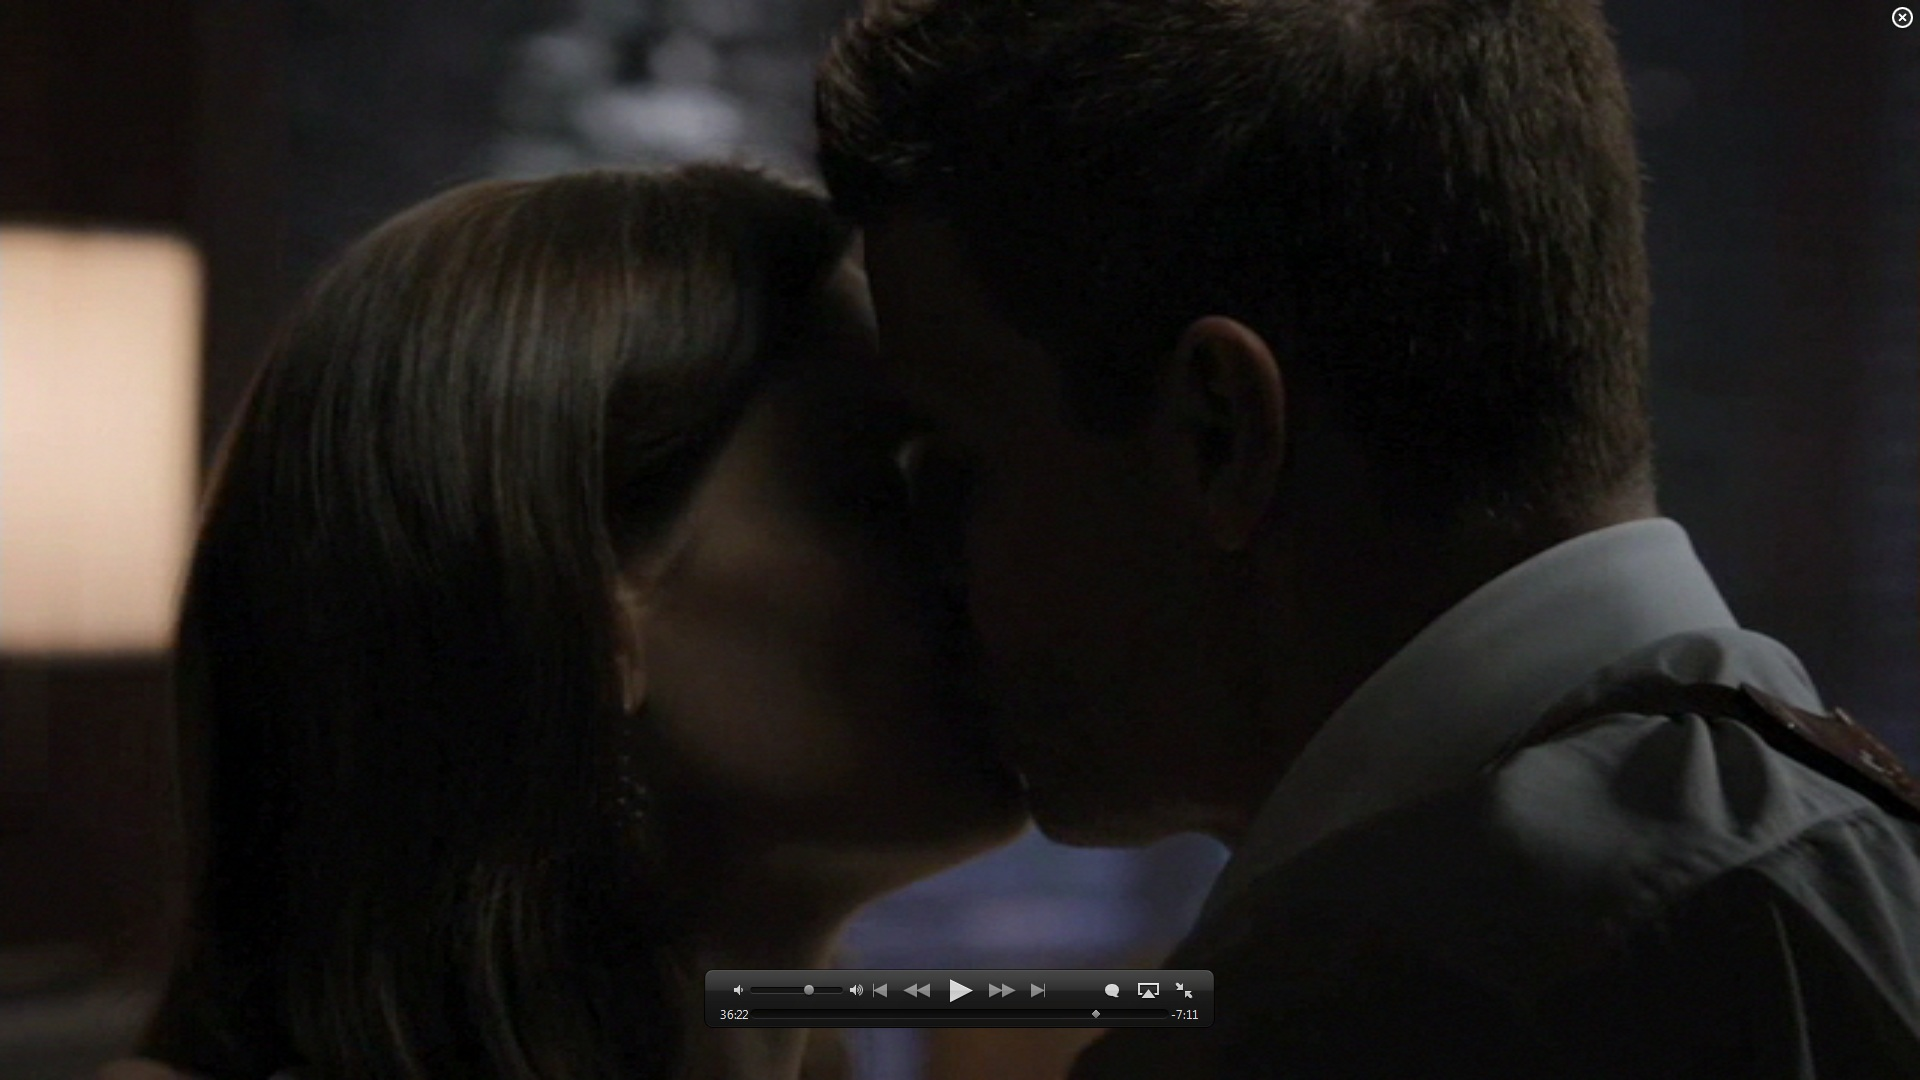 7x01 kiss booth and bones image 26582099 fanpop